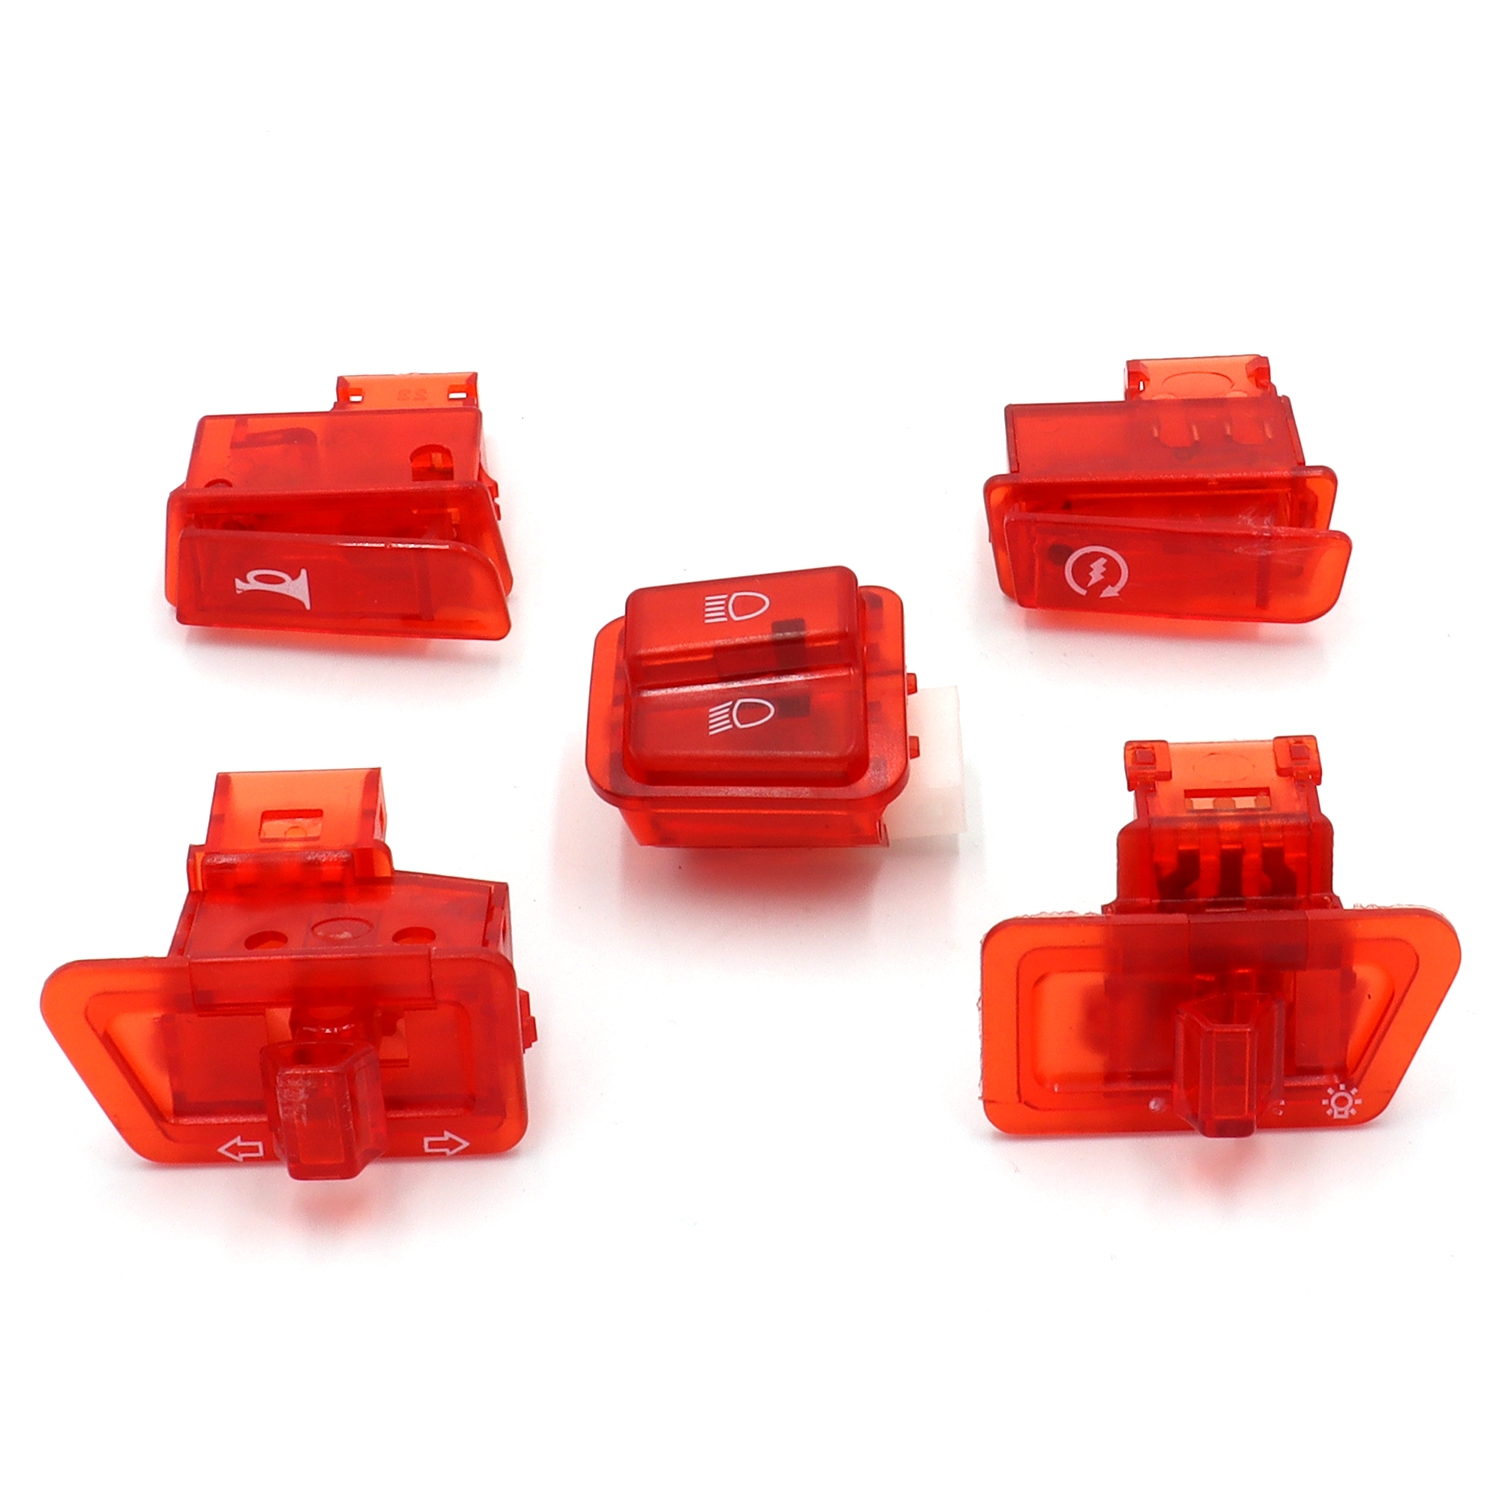 New Pack of Head Light Horn Dimmer Turn Singal Starter Switch Button for Gy6 50cc 125cc 150cc Scooter Moped